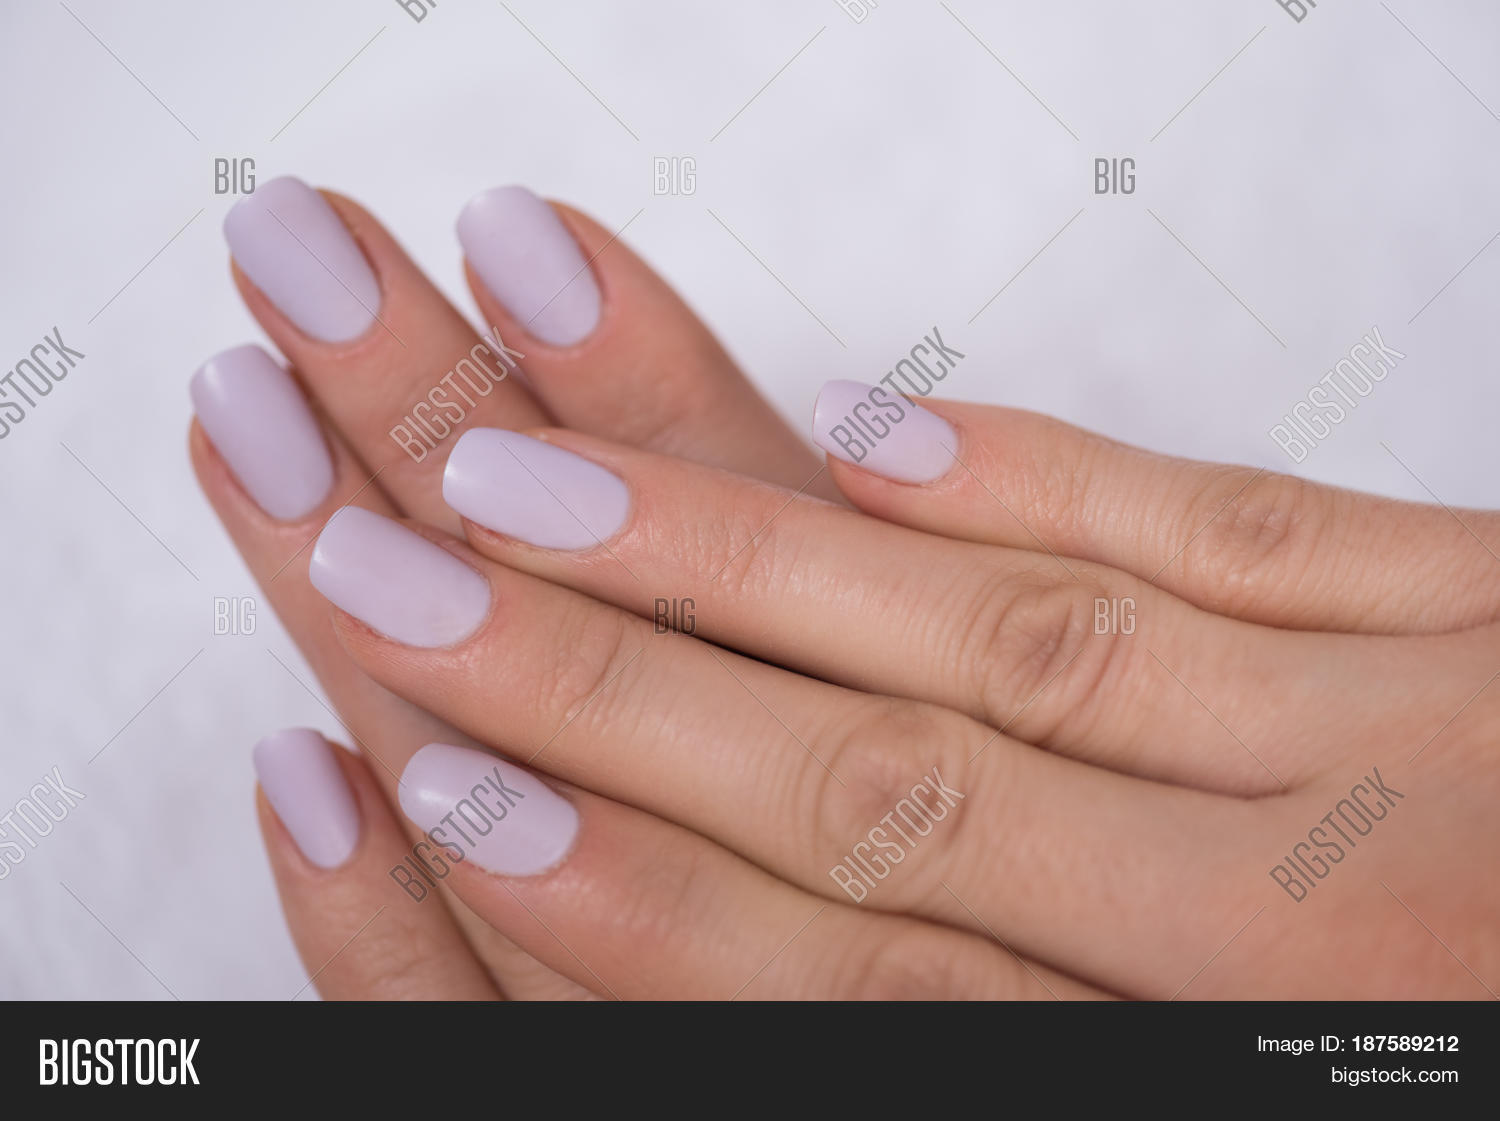 Beautiful fingers french manicure image photo bigstock for 33 fingers salon